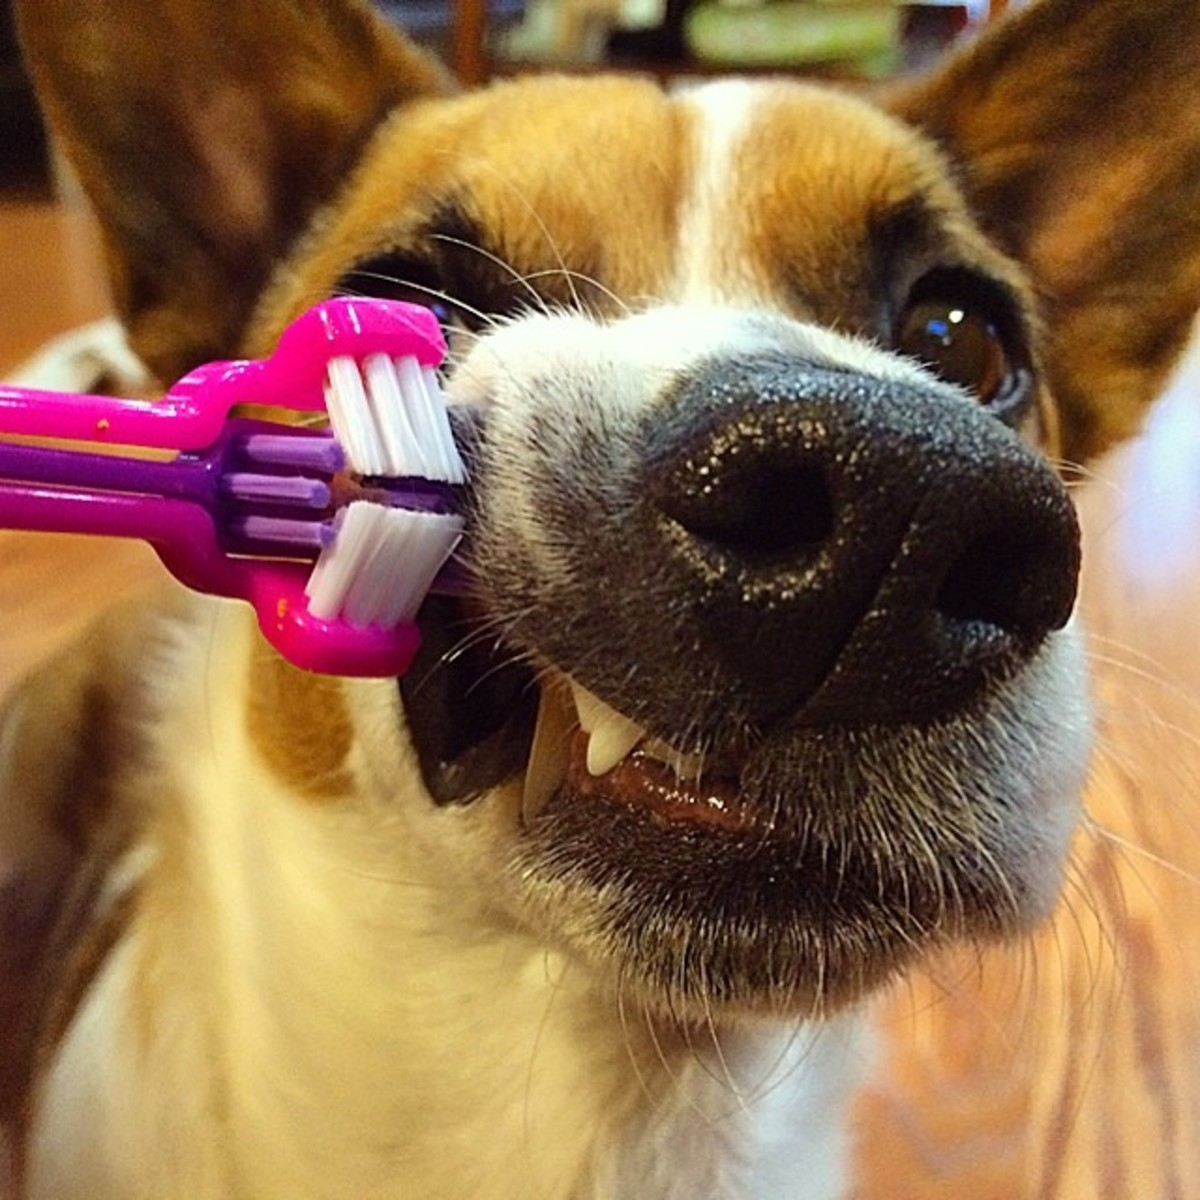 Dogs benefit from regular brushing just as humans do.